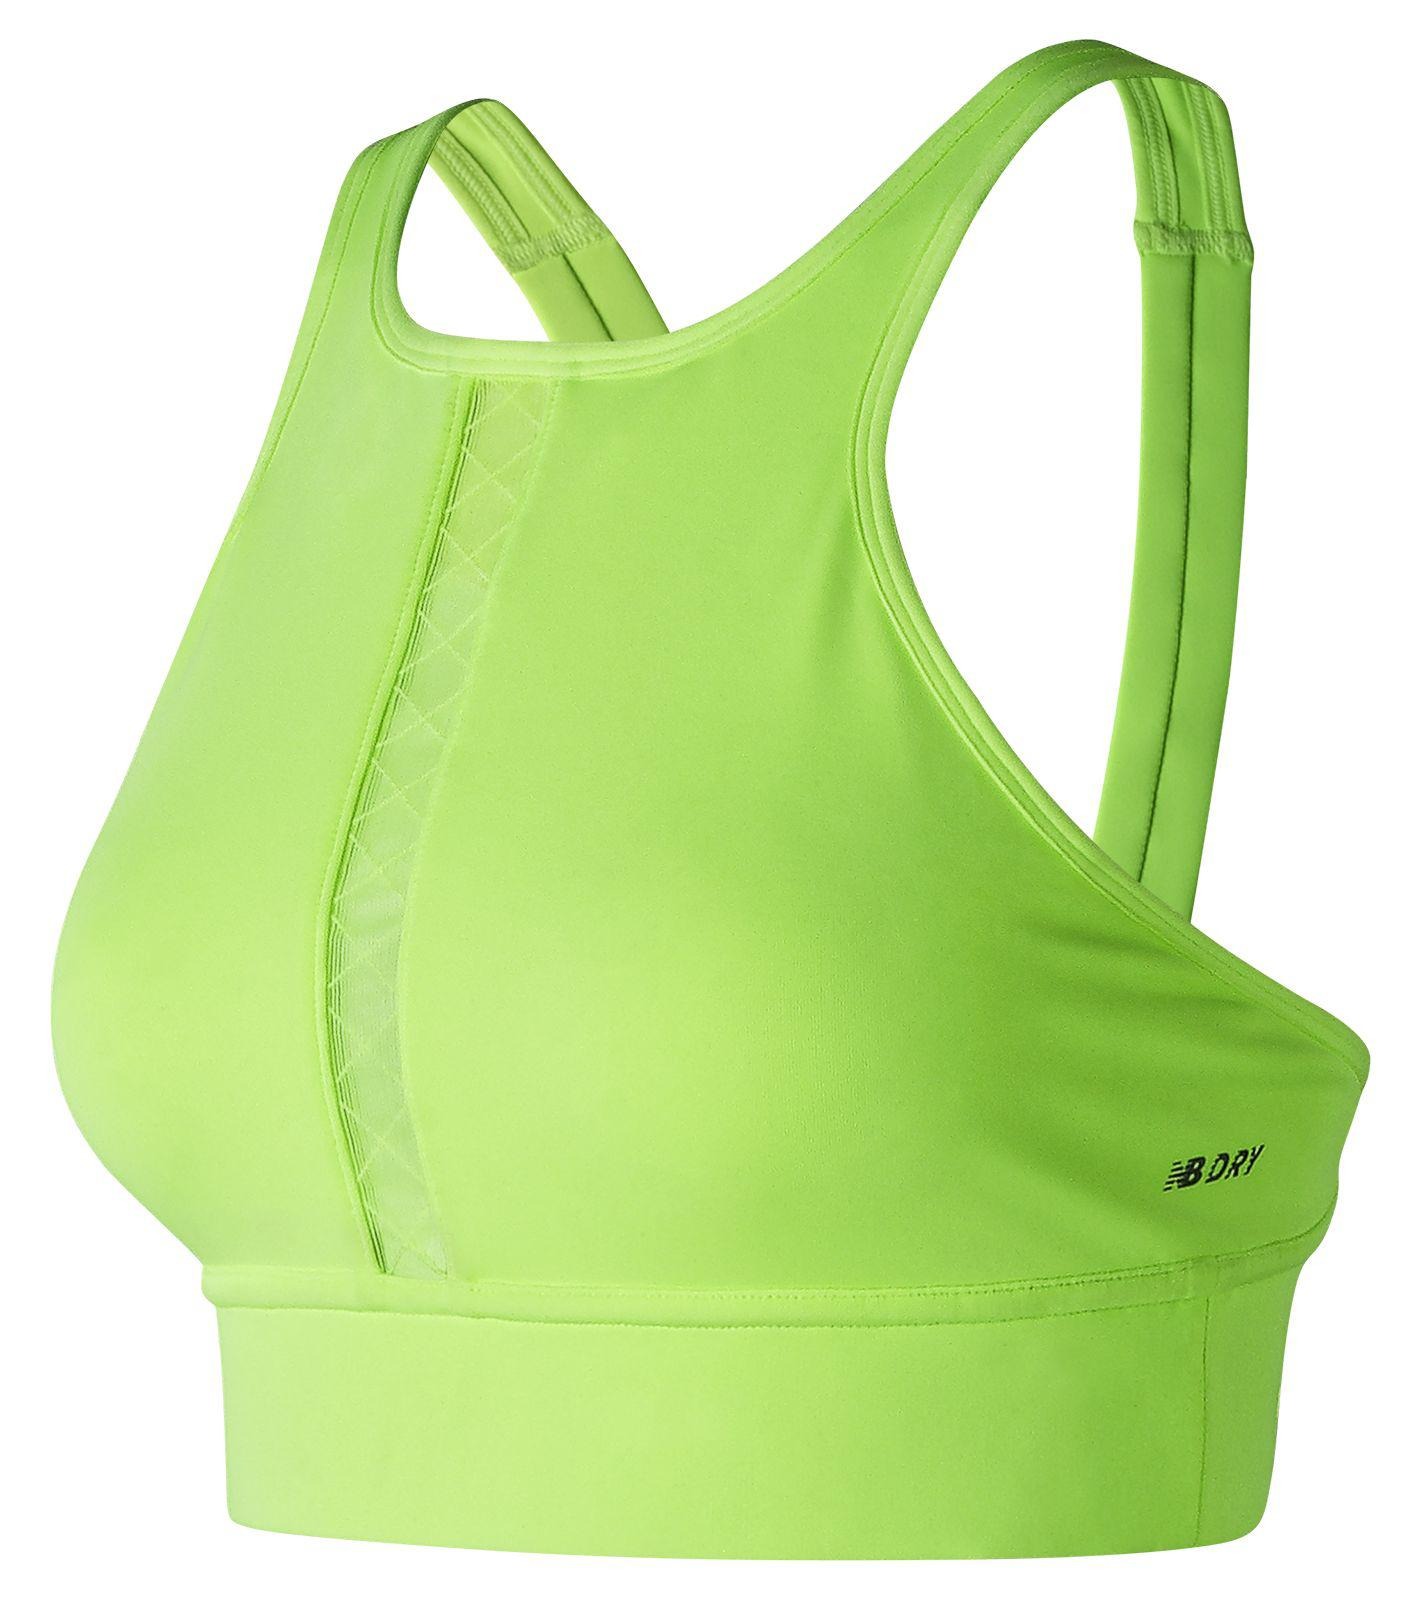 cfbb379d3dcdc Lyst - New Balance Nb Beyond Bra in Green